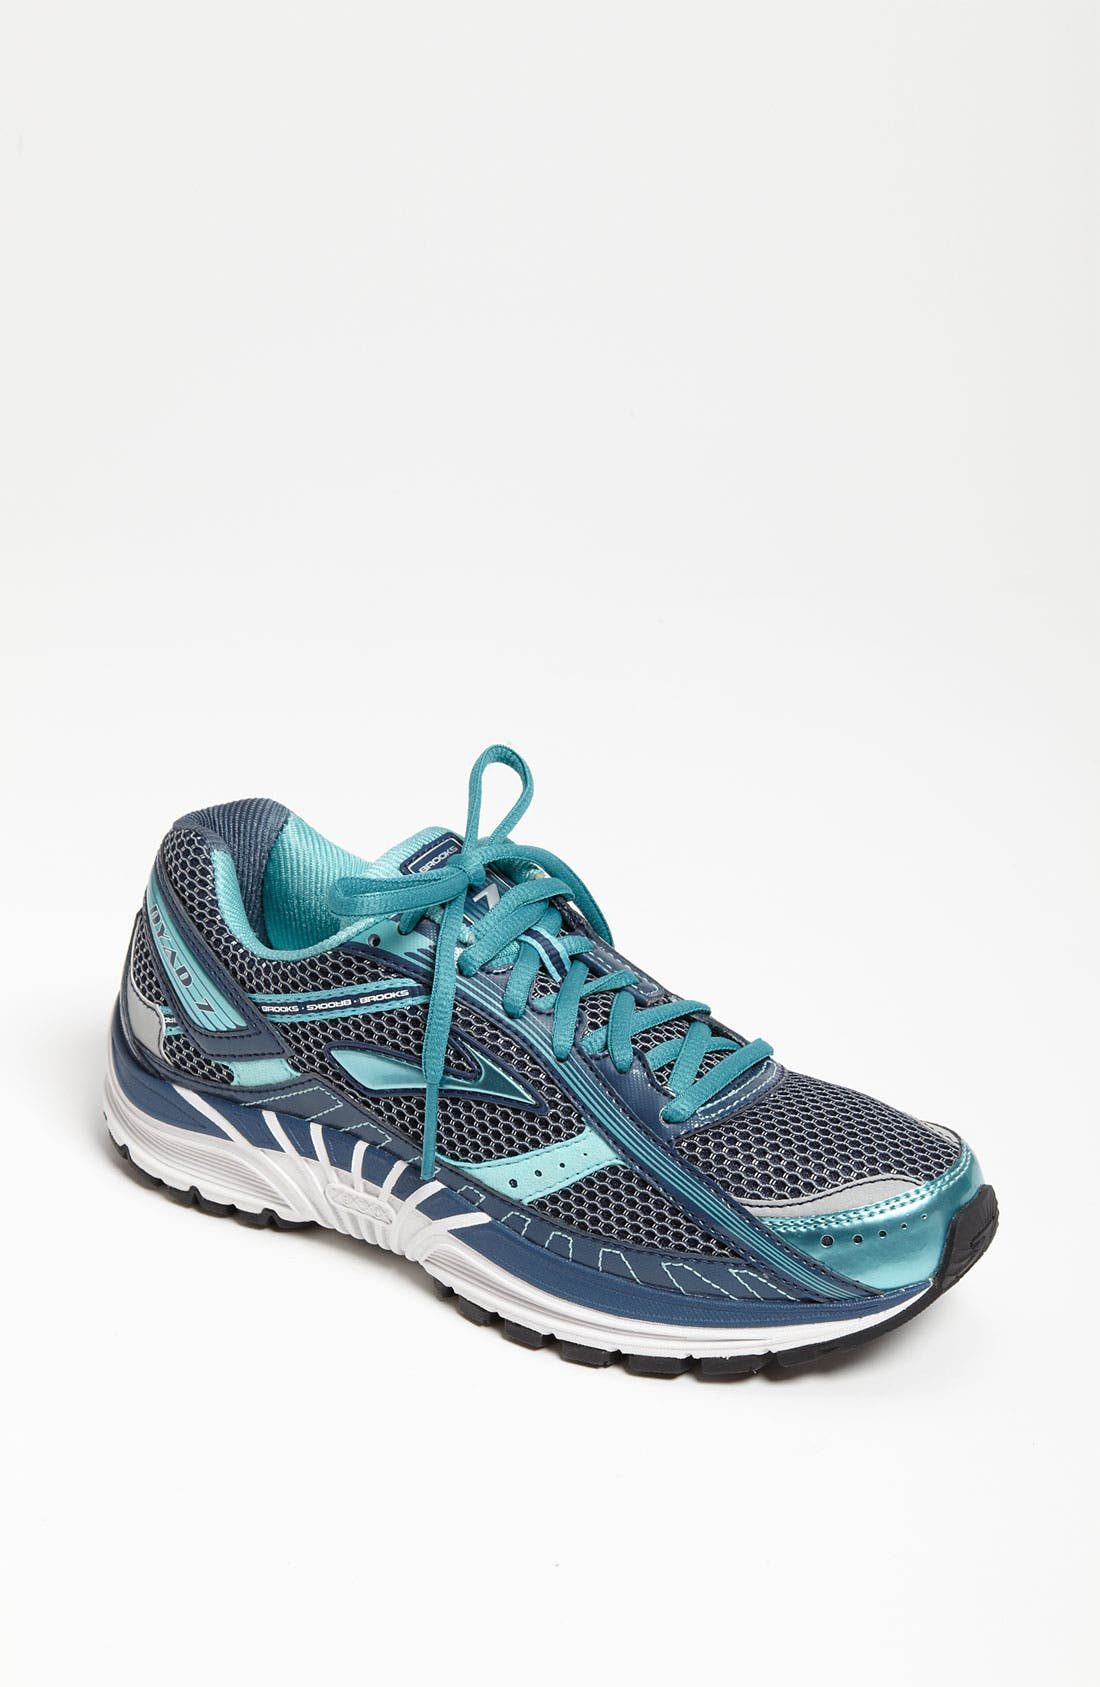 Main Image - Brooks 'DYAD 7' Running Shoe (Women)